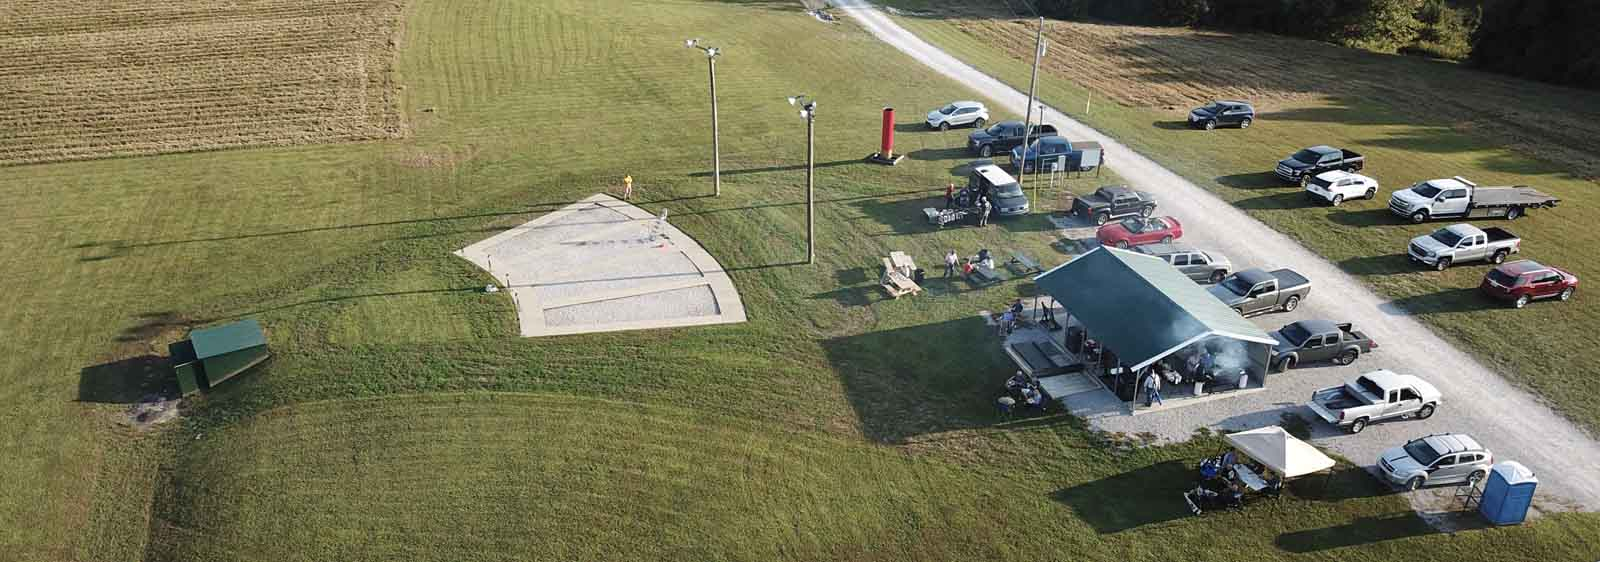 Eagle Eye view of Trap Range